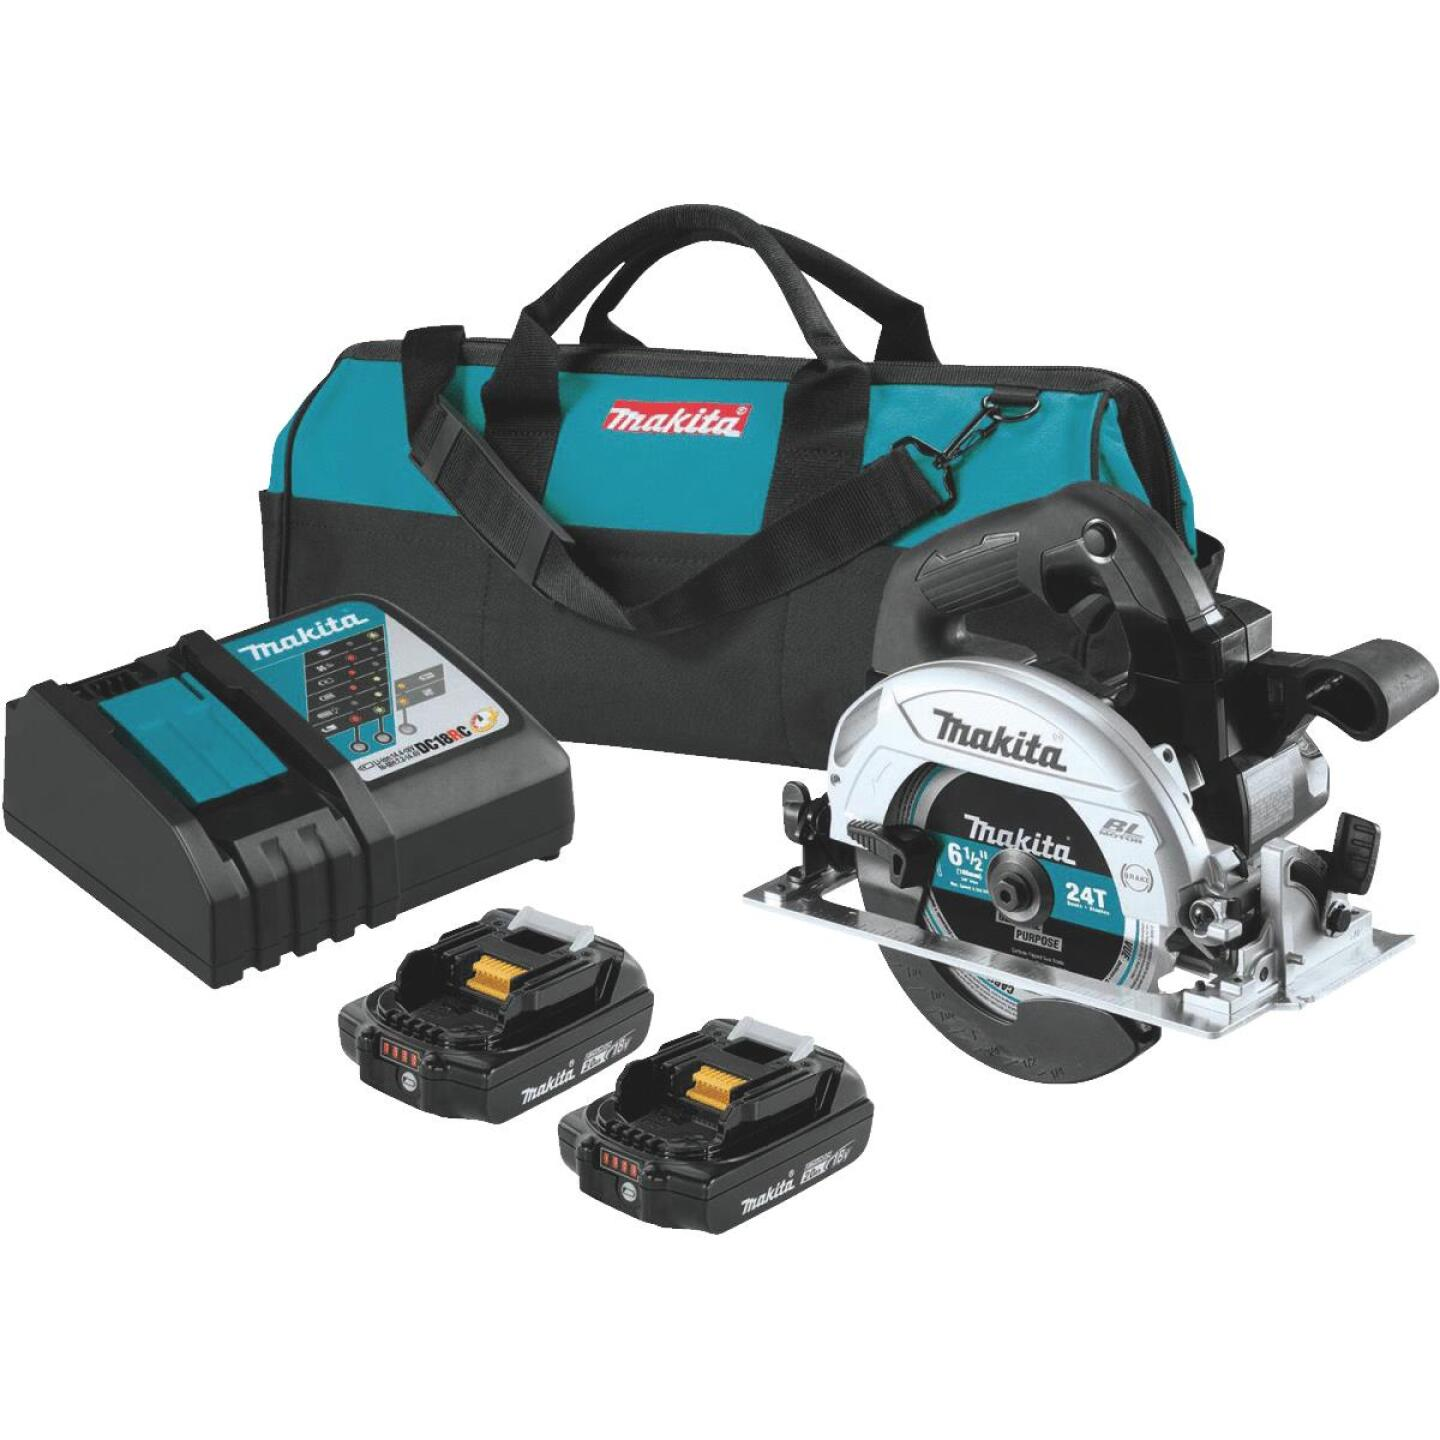 Makita 18 Volt LXT Lithium-Ion Brushless 6-1/2 In. Sub-Compact Cordless Circular Saw Kit Image 1